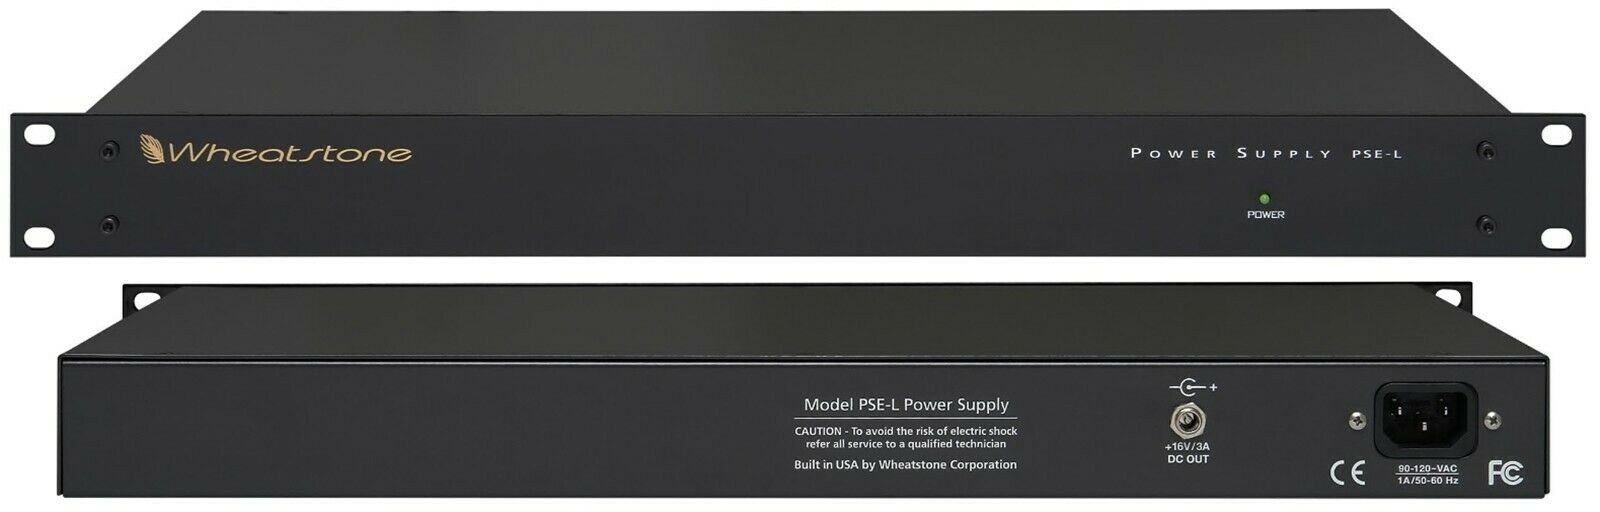 Wheatstone PSE-L Spare/Redundant Power Supply L-12 Console Surface - NEW IN BOX [New]-www.prostudioconnection.com